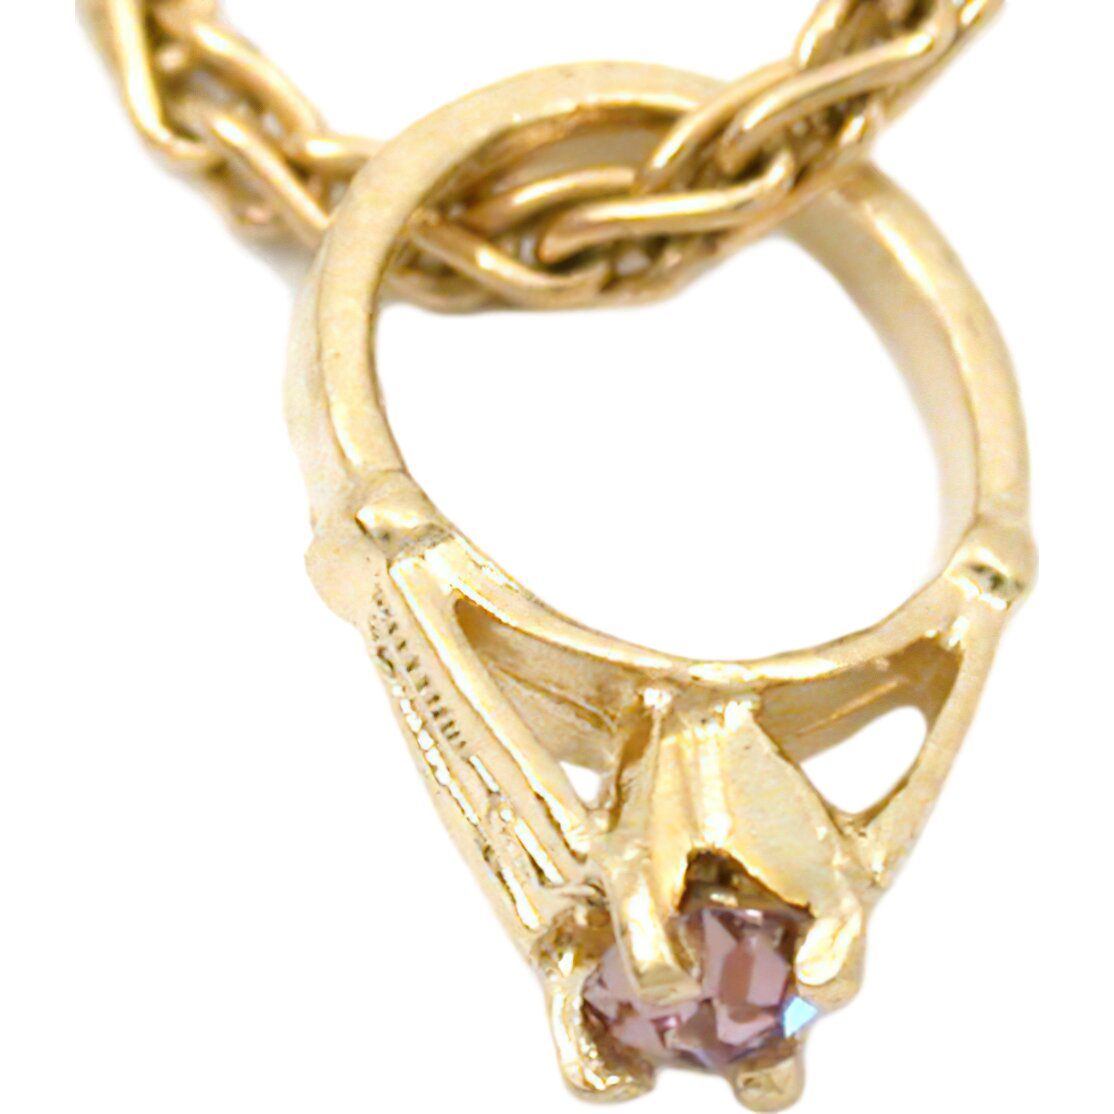 14k Gold June Birthstone Baby Ring Charm Chain Jewelry Ebay